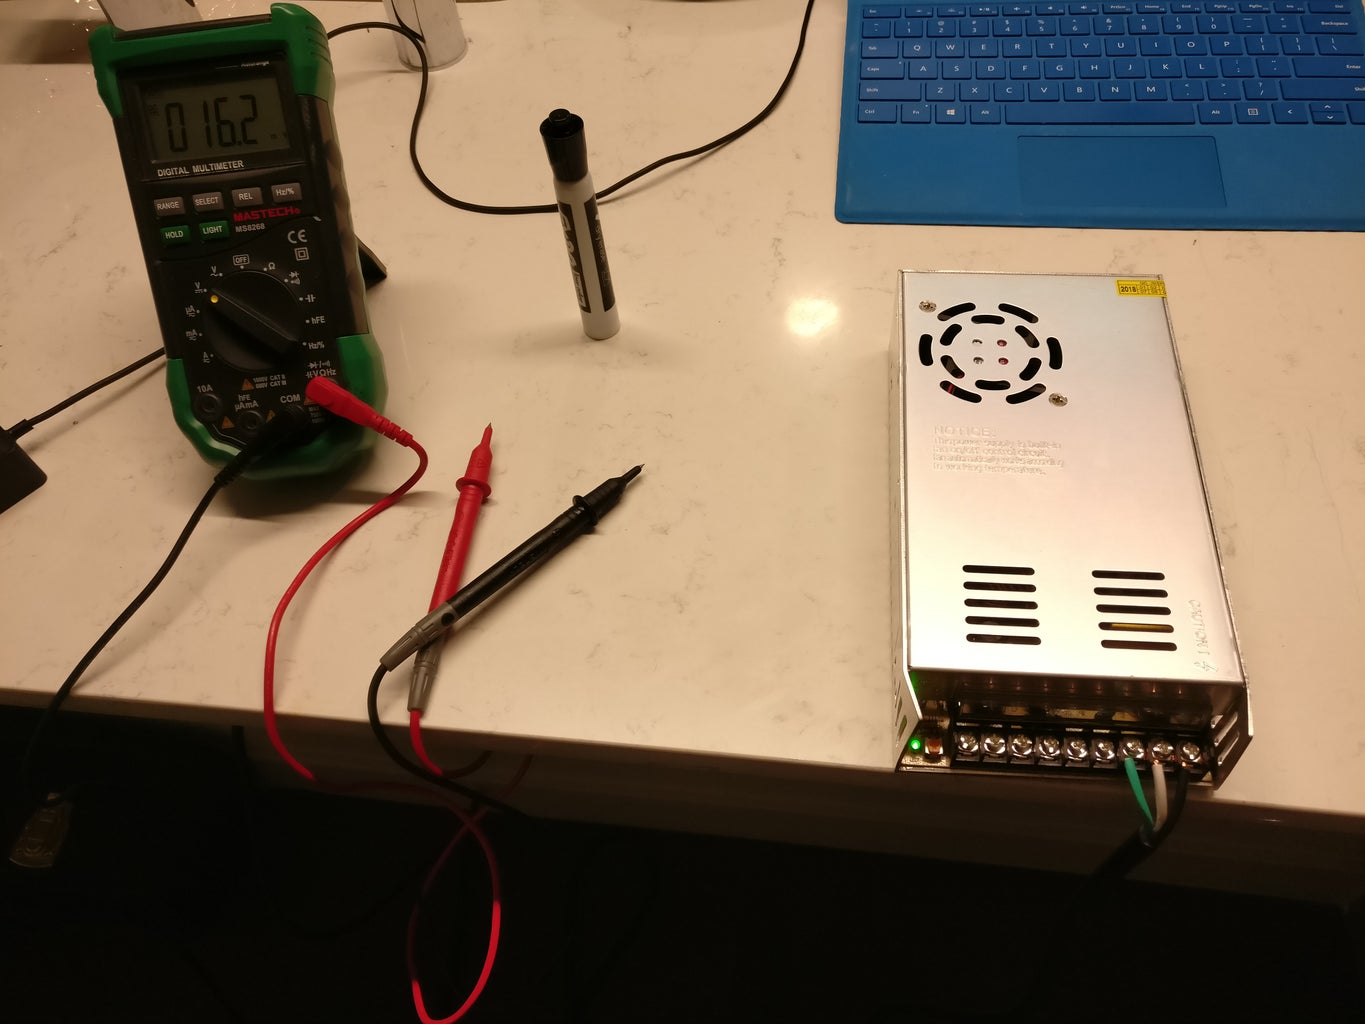 Electrical - Hooking Up the Power Supply and Testing